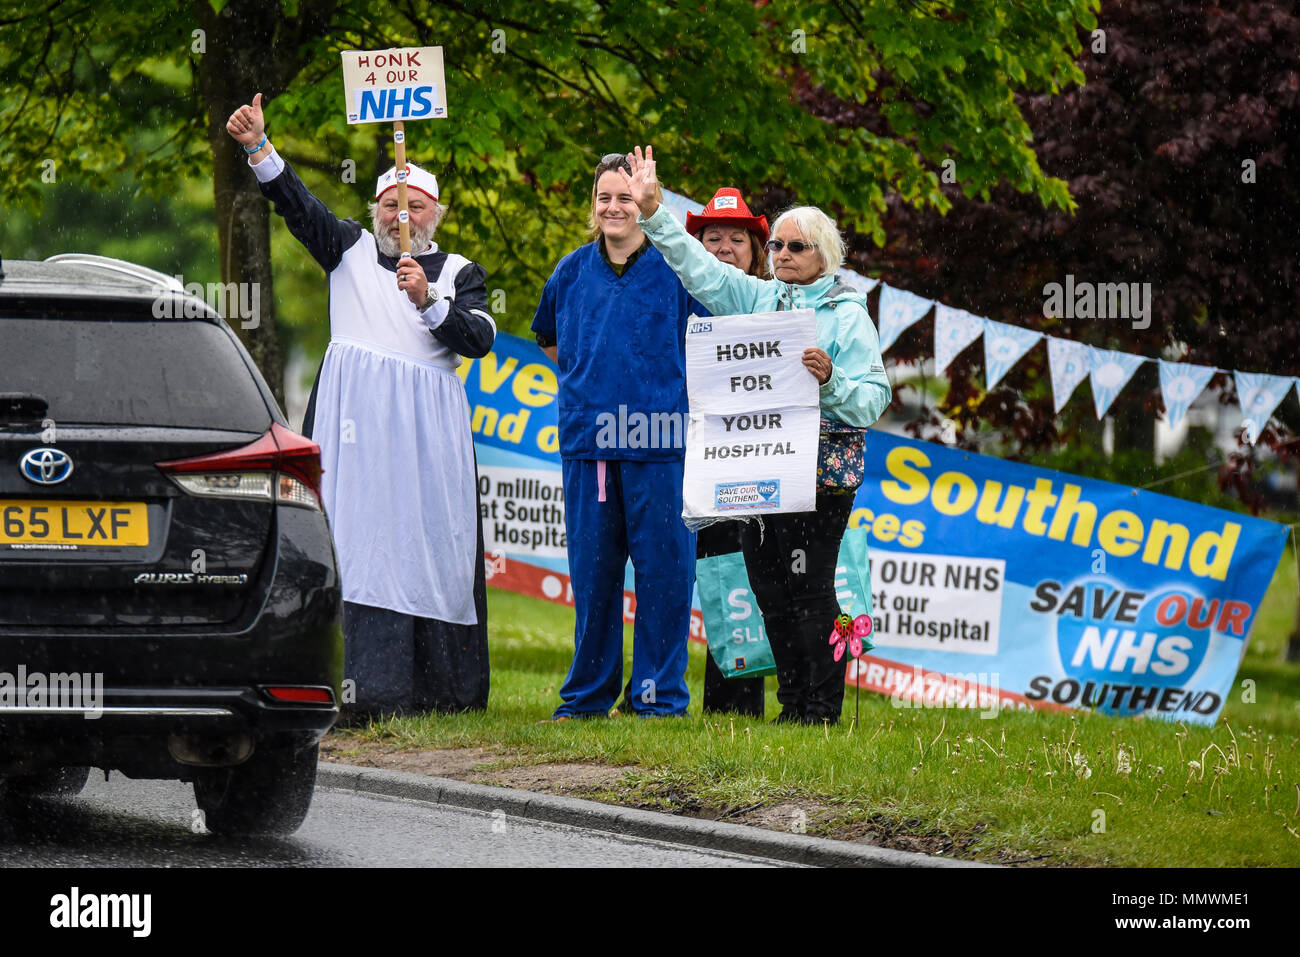 Protesters stood in the rain outside Southend Hospital to raise support against cuts. Drivers were asked to honk their car horns to show their support - Stock Image